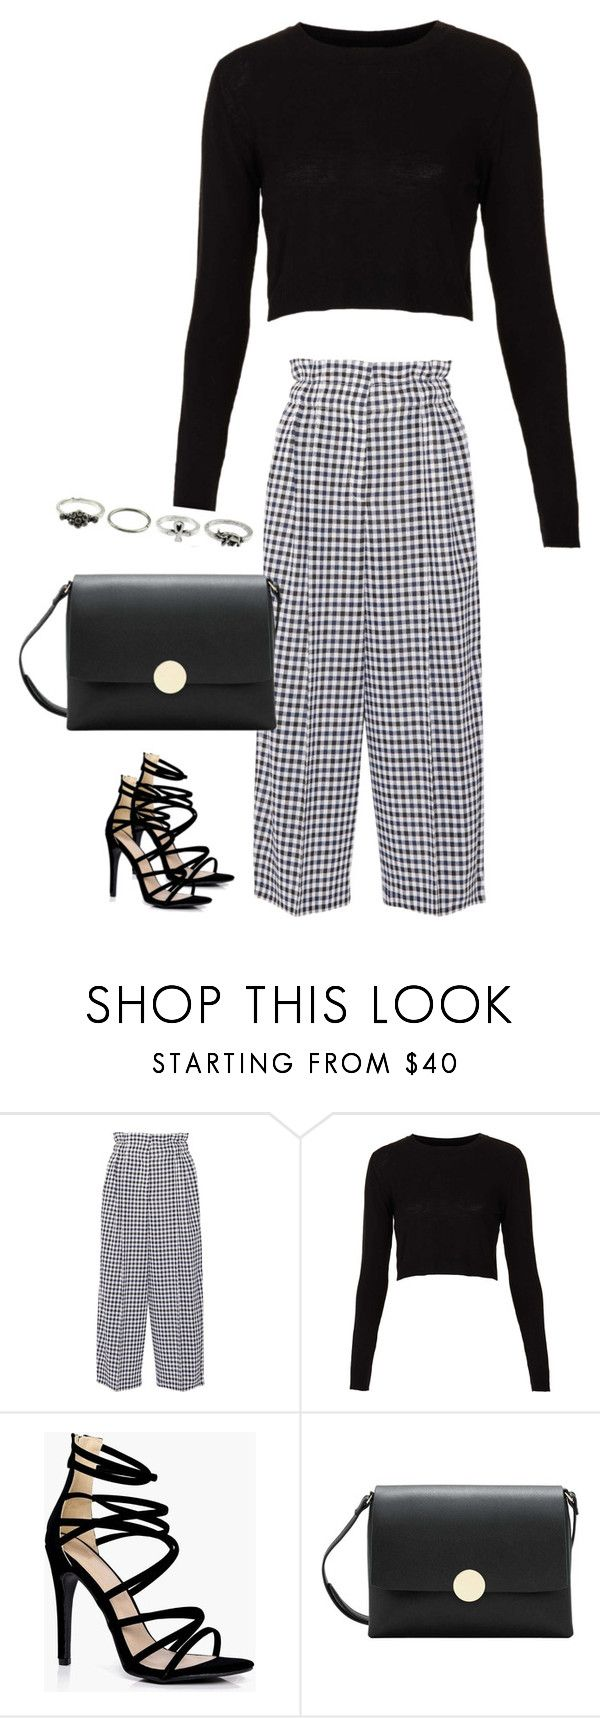 """""""Untitled #2884"""" by officialnat ❤ liked on Polyvore featuring Sonia Rykiel, Topshop, Boohoo and MANGO"""